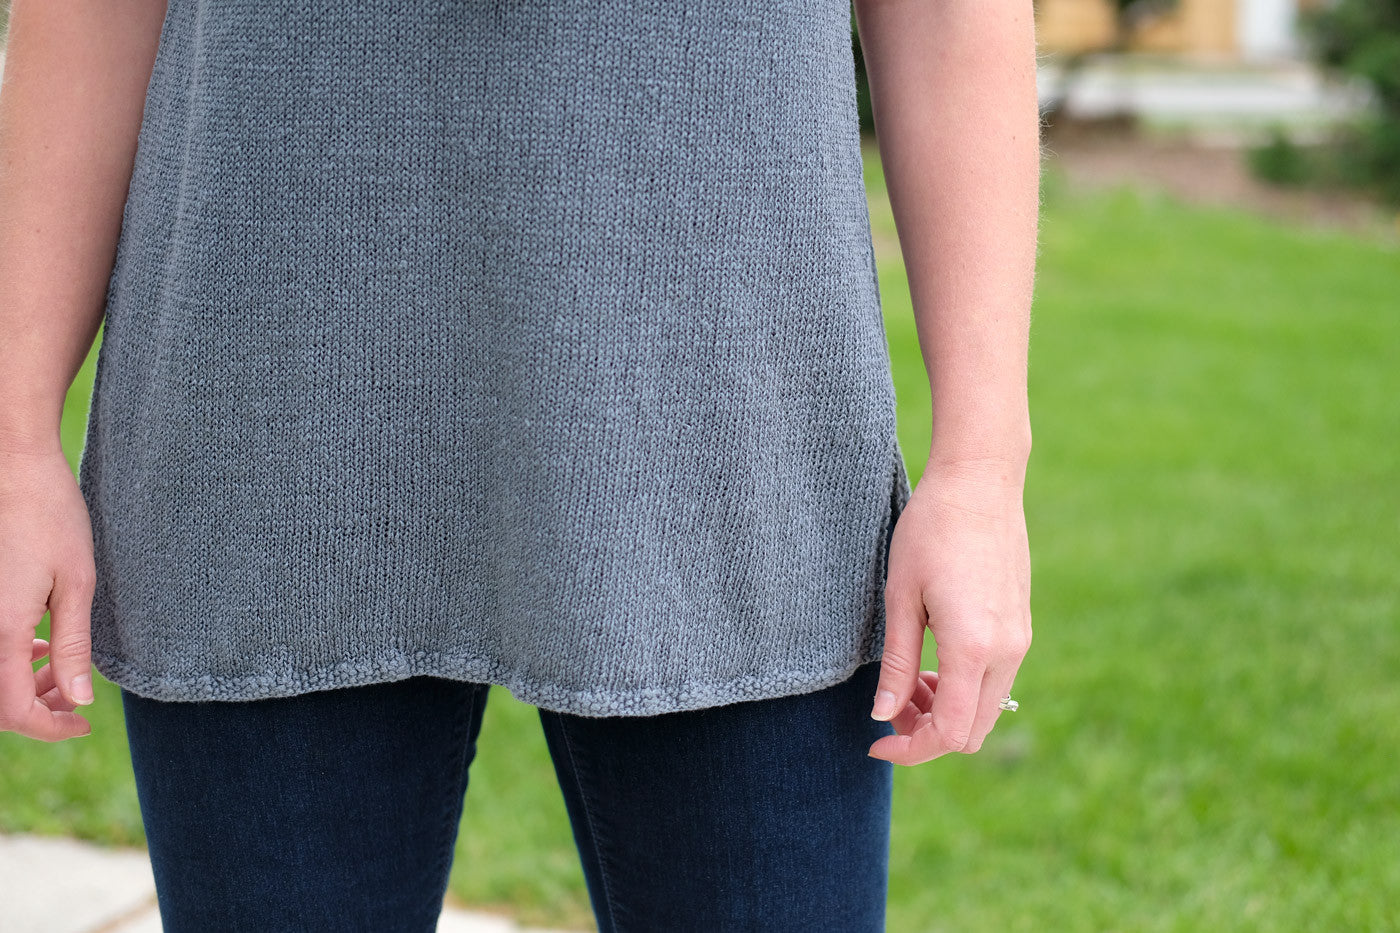 Shibui Reed hemline detail in Graphite